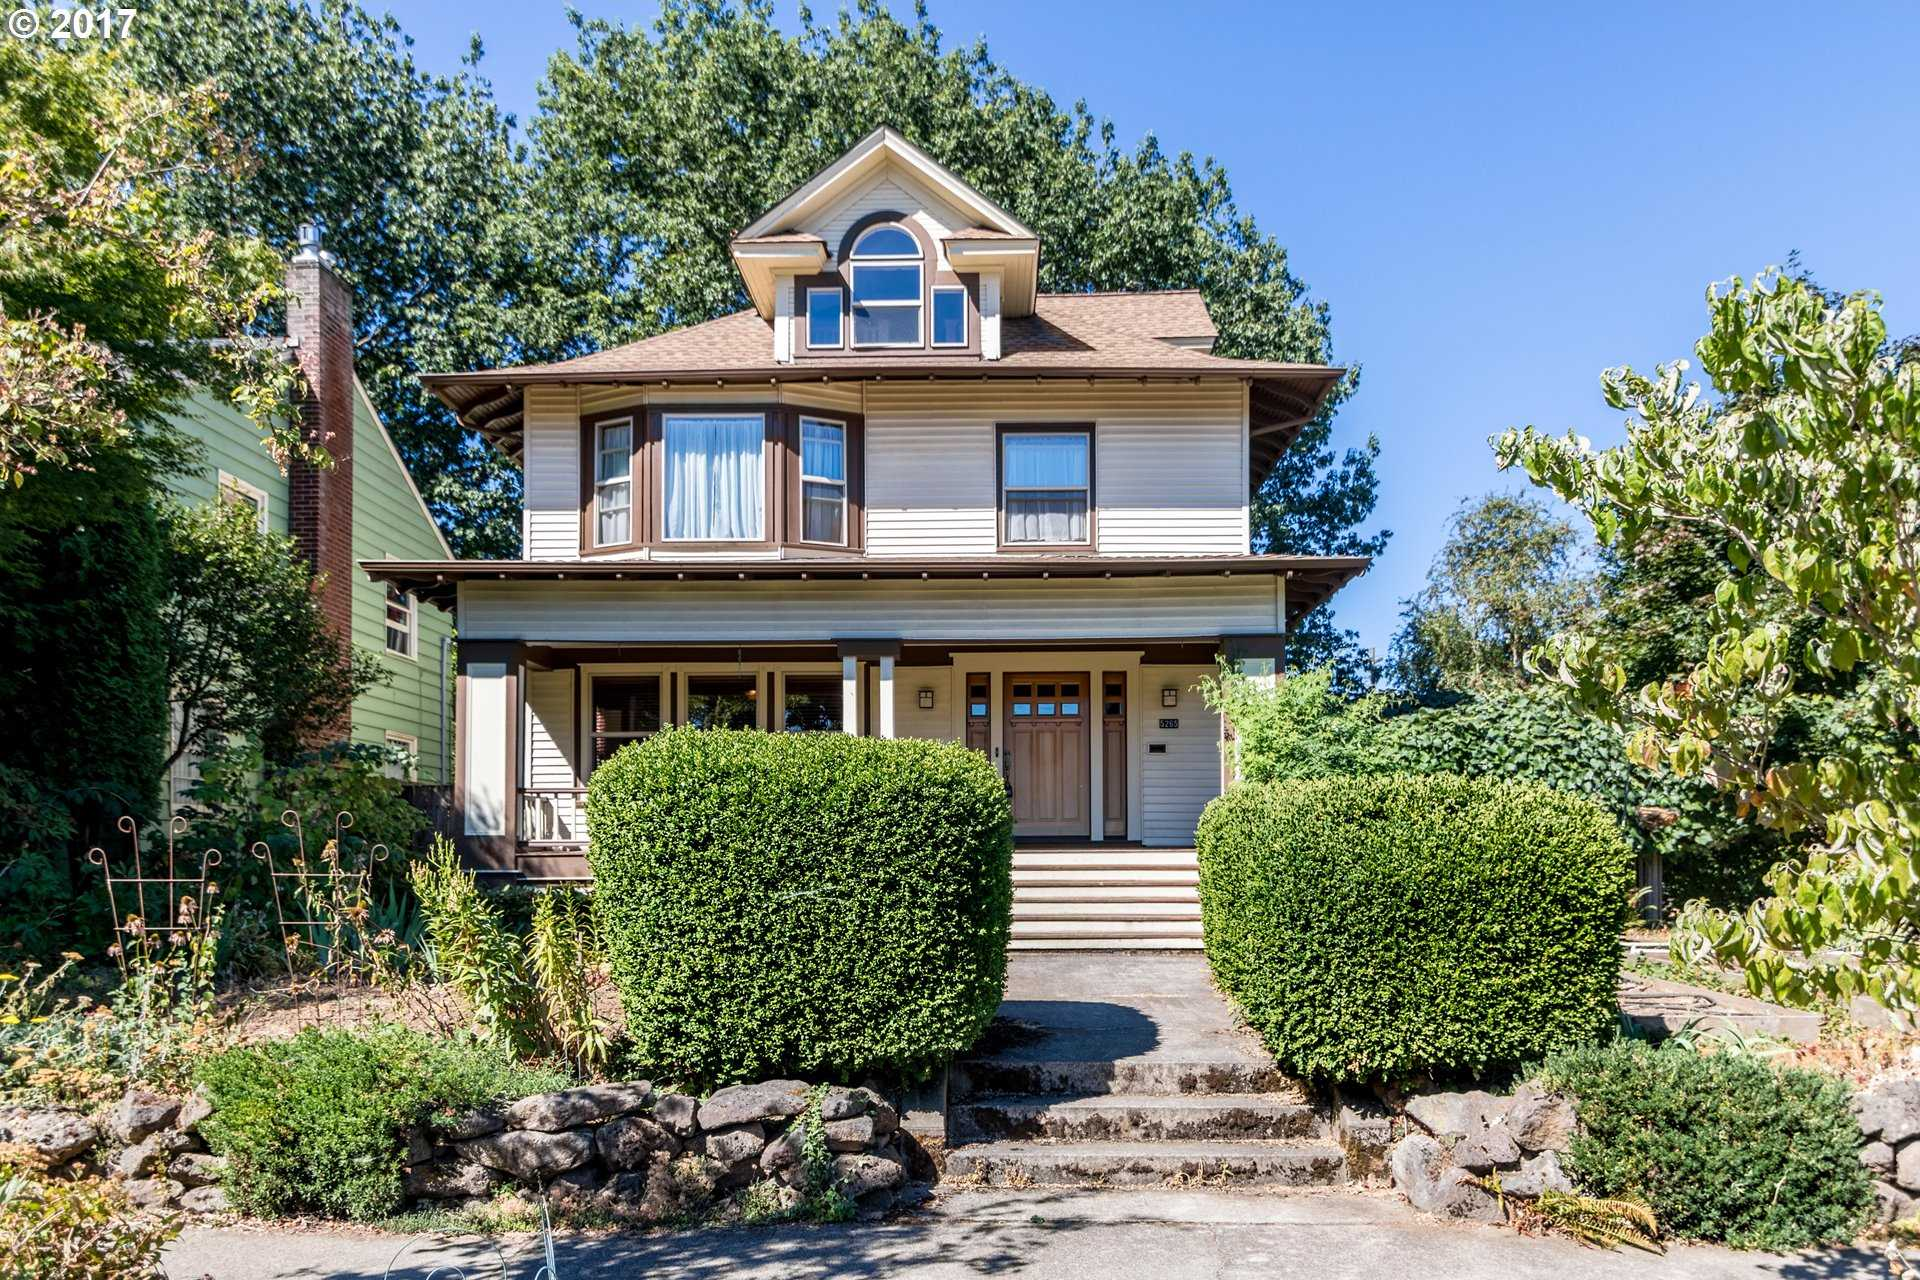 $550,000 - 4Br/2Ba -  for Sale in Portland